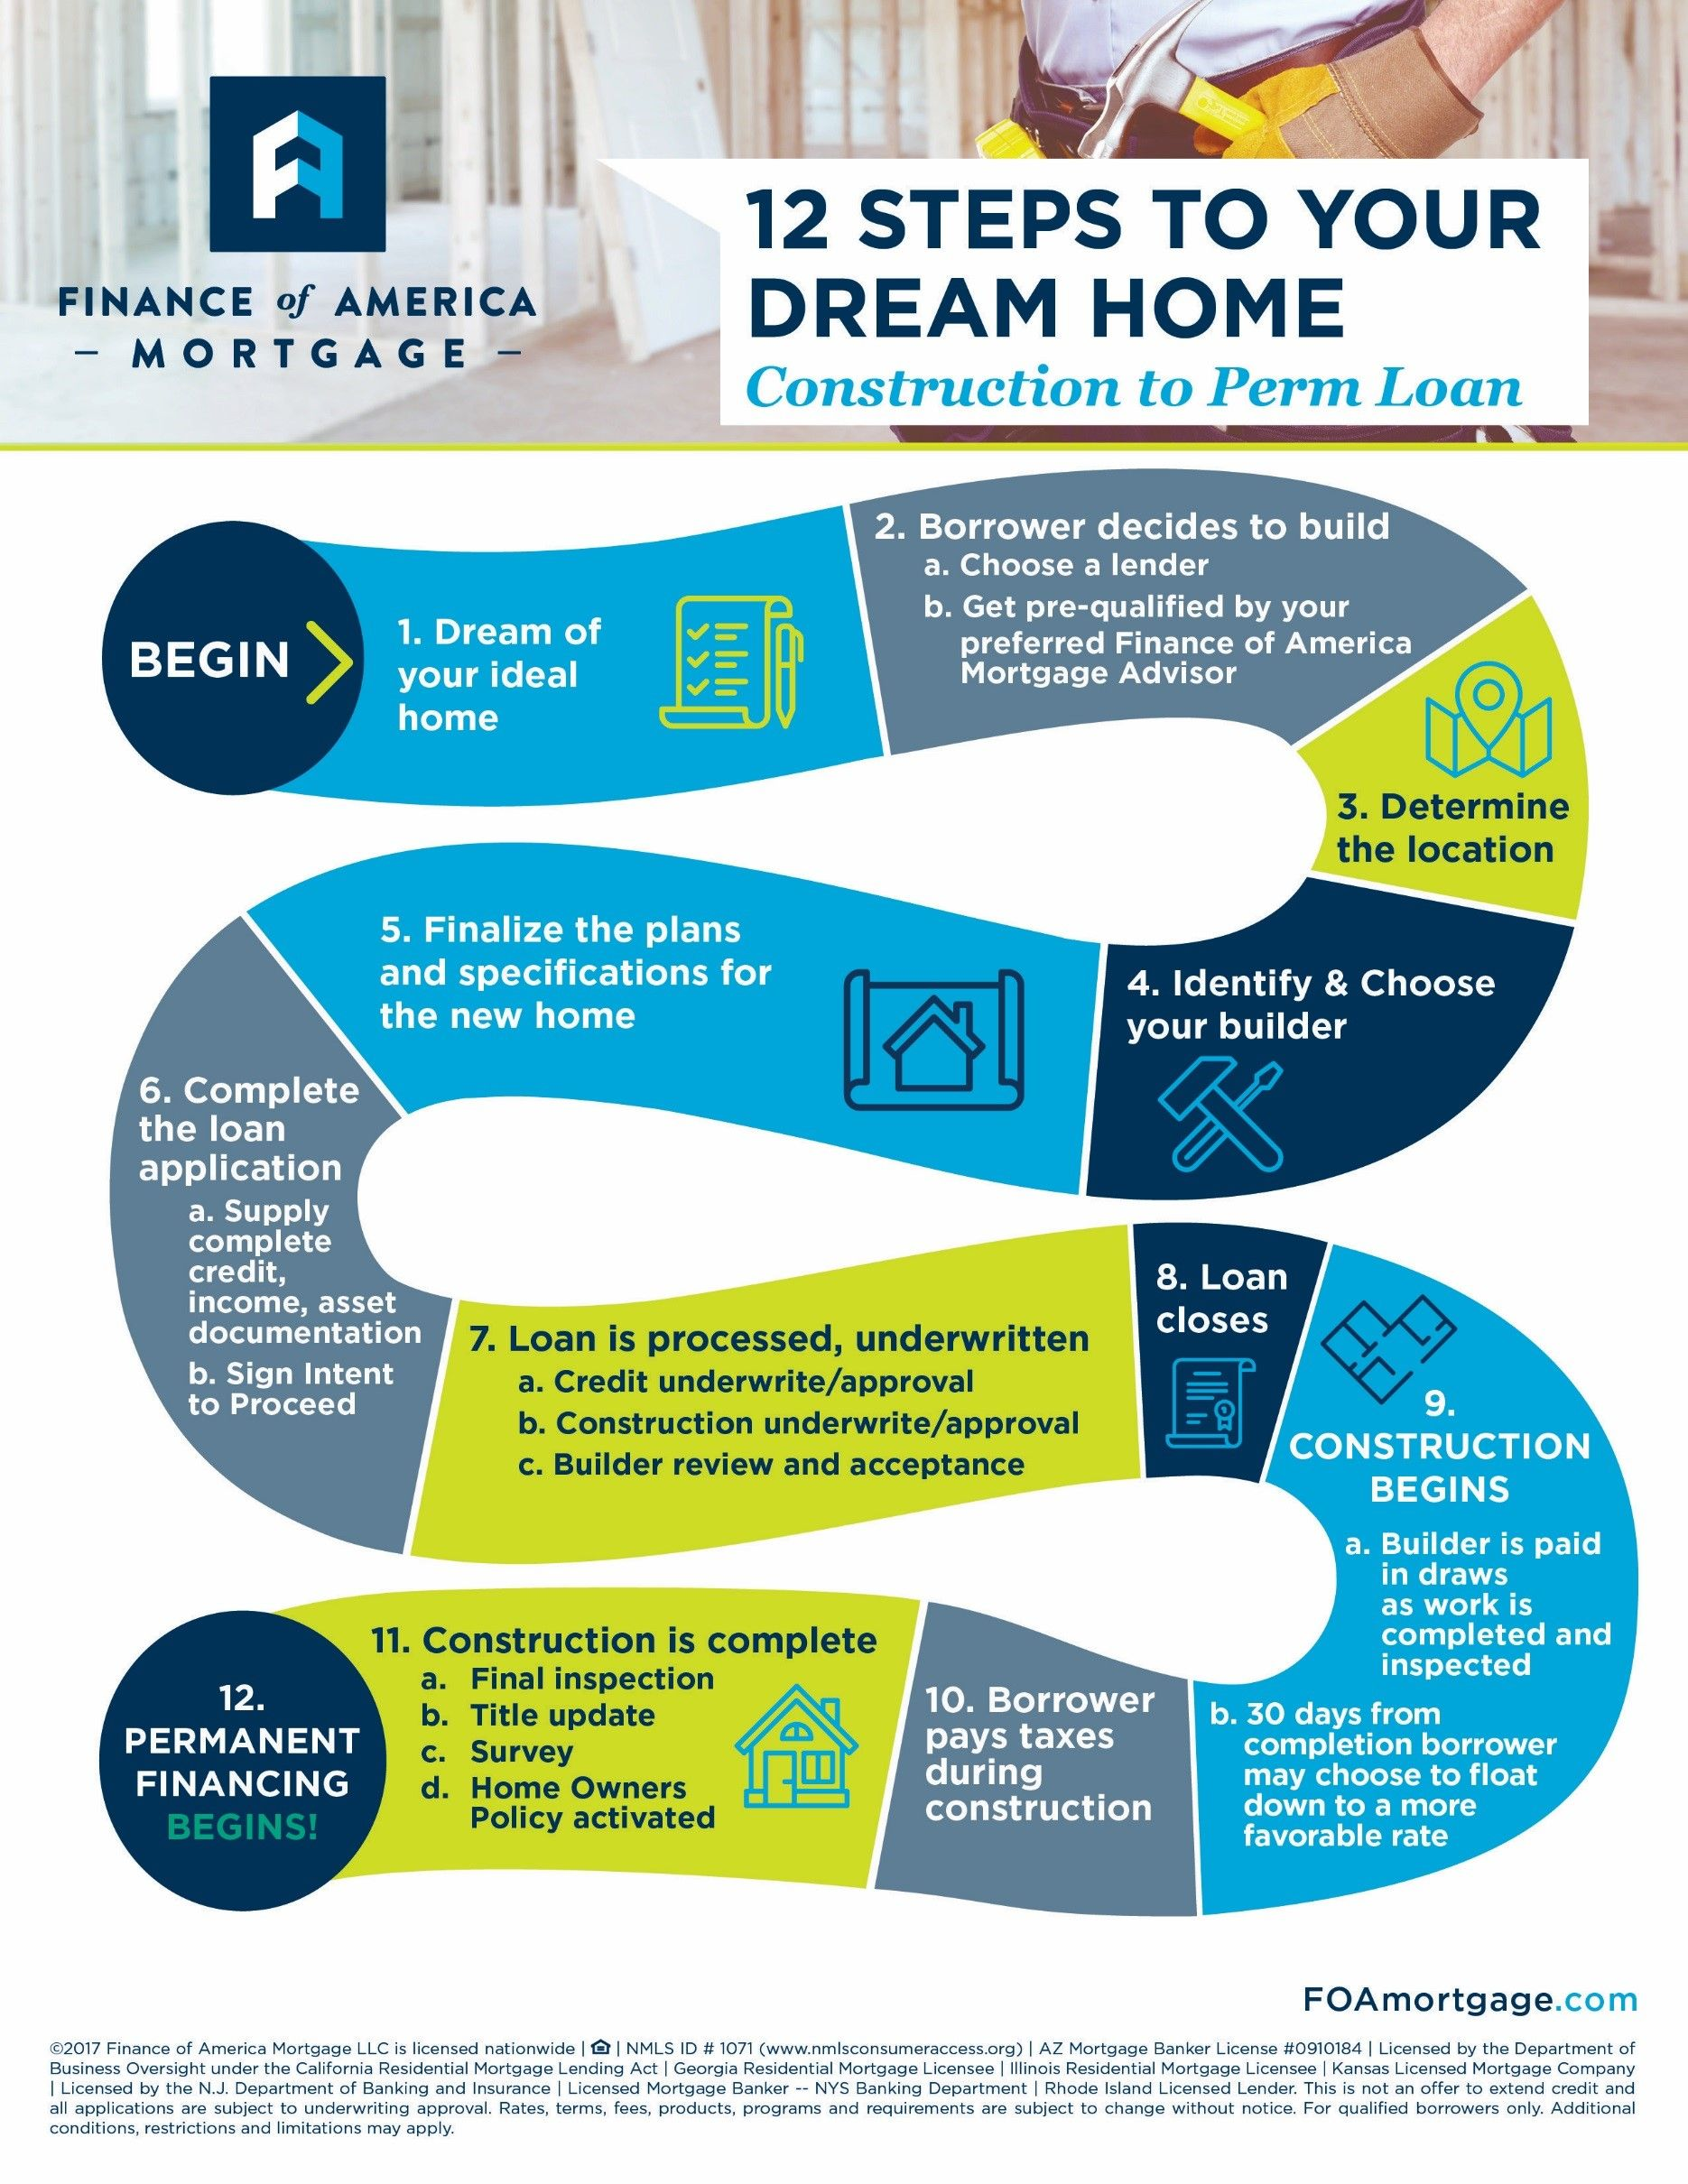 12 Steps To Your Dream Home Construction To Perm Loan With